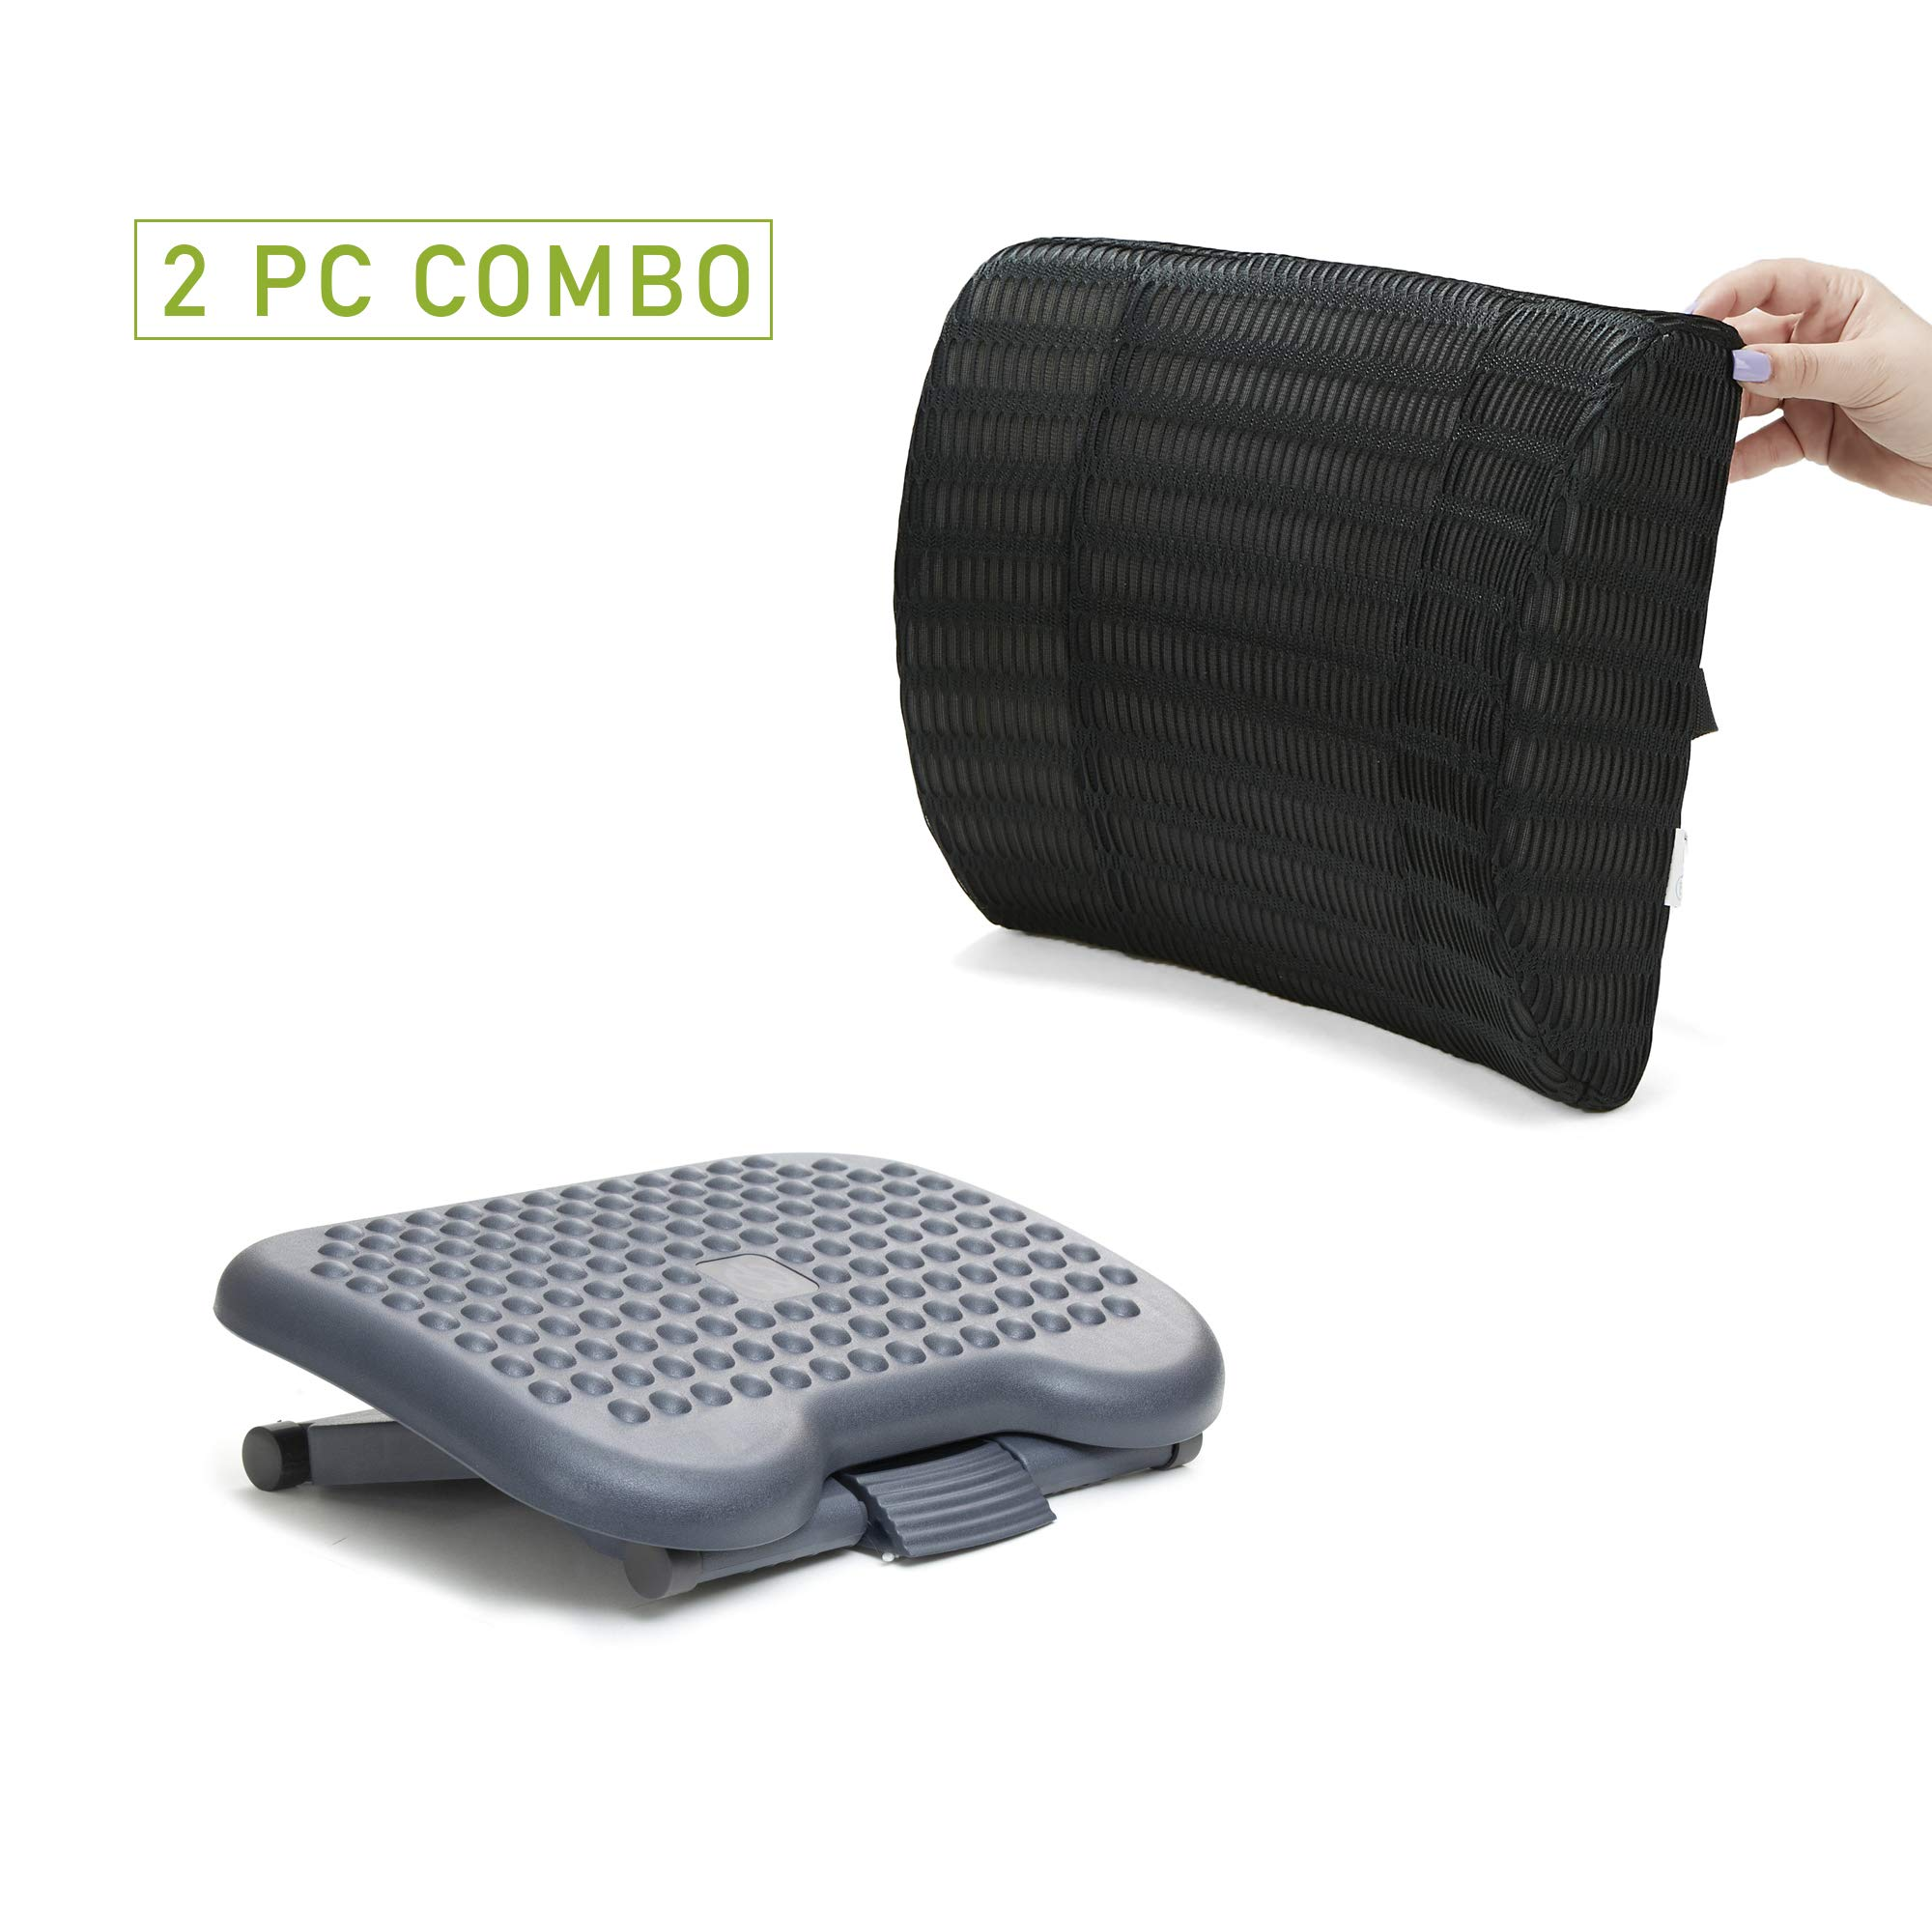 Mind Reader CMBFTFOAM-BLK Memory Foam Lumbar Support Back Cushion for Lower Back Pain Relief with Height Adjustable Ergonomic Non Slip Foot Rest,Black